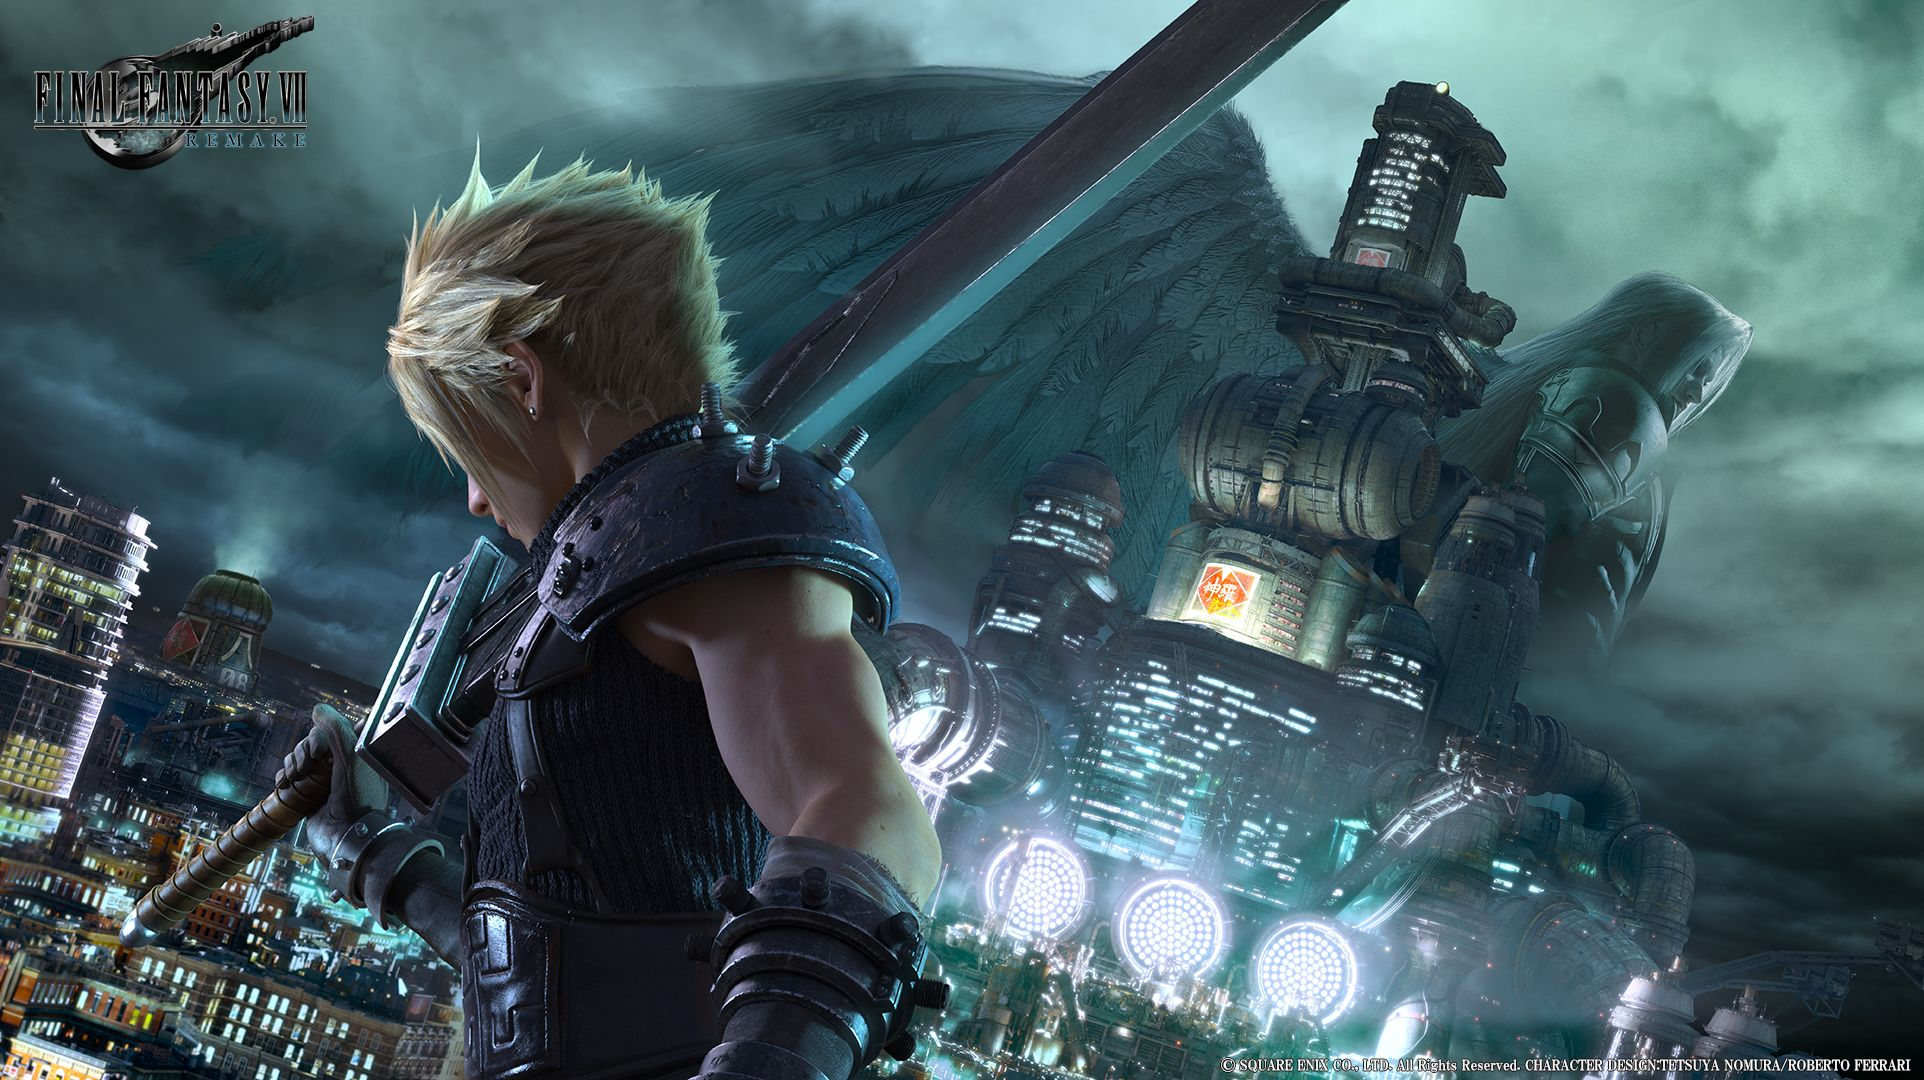 FFVII_Remake_Artwork_31012017_1485868169